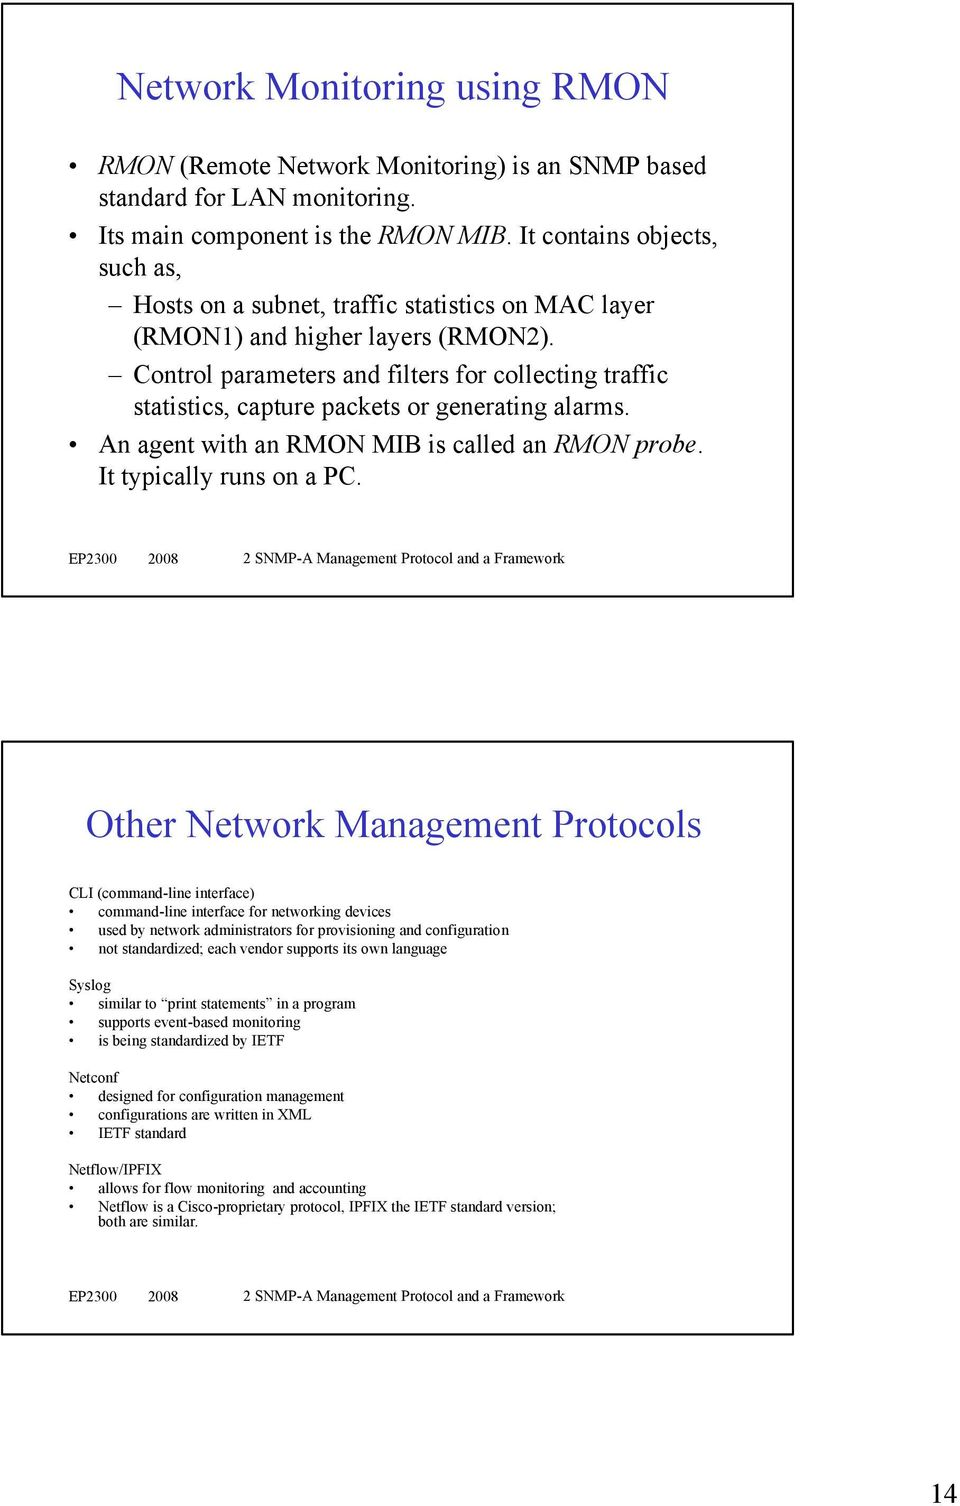 Control parameters and filters for collecting traffic statistics, capture packets or generating alarms. An agent with an RMON MIB is called an RMON probe. It typically runs on a PC.